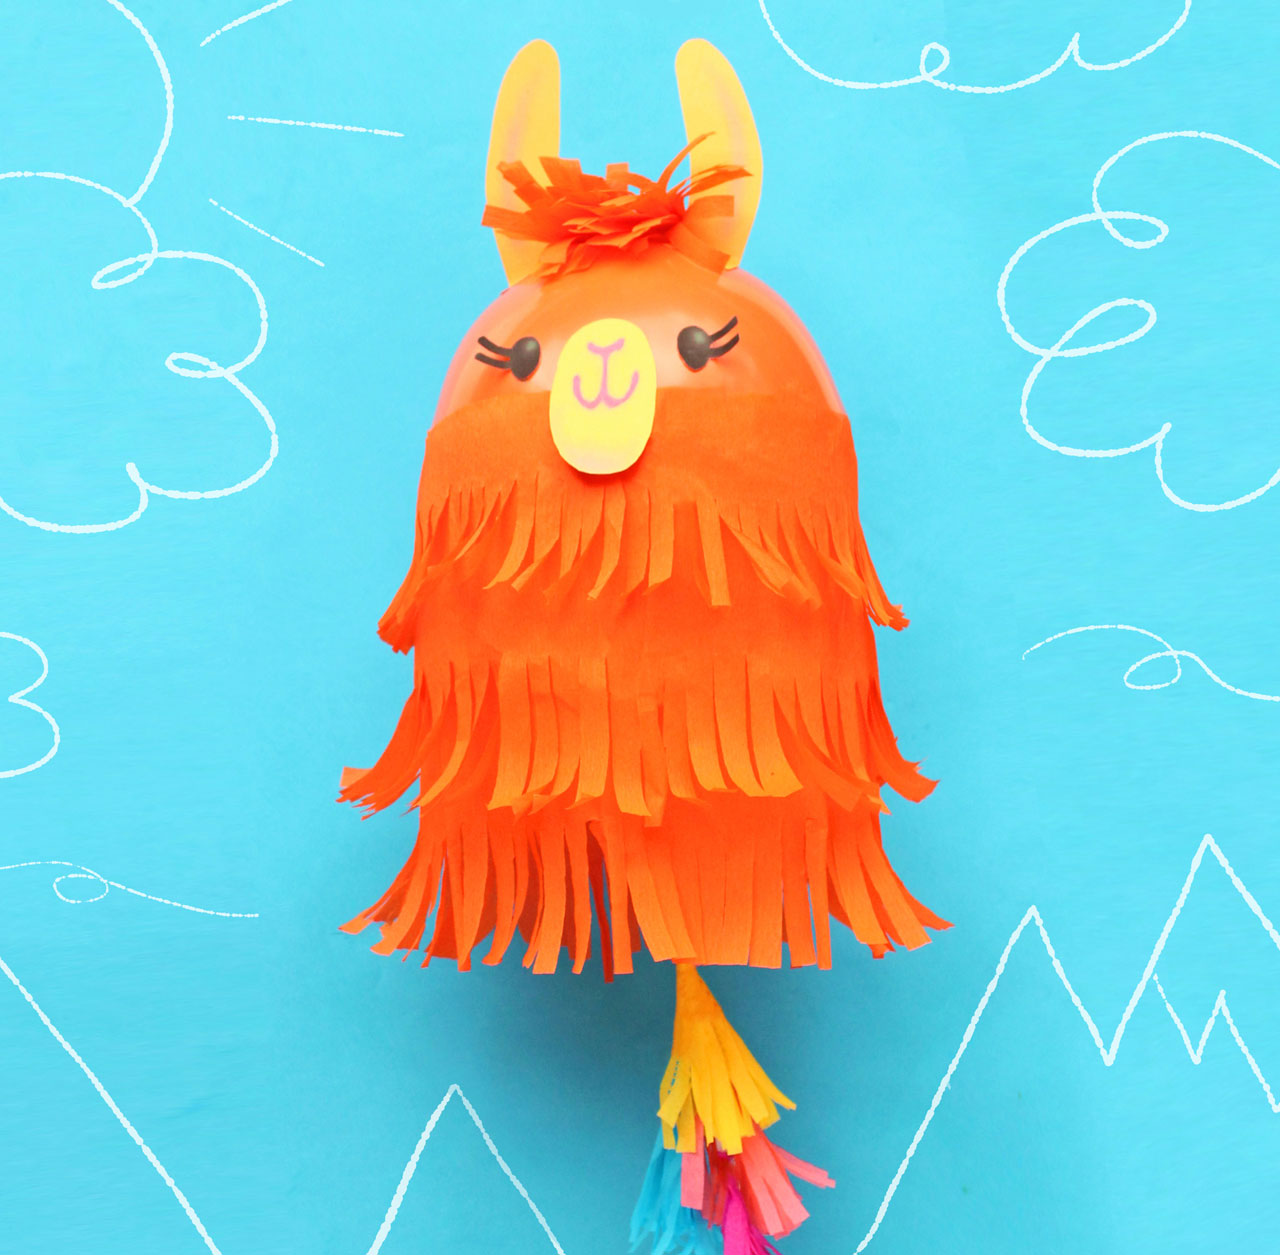 Easy to make a brilliant llama balloon decoration